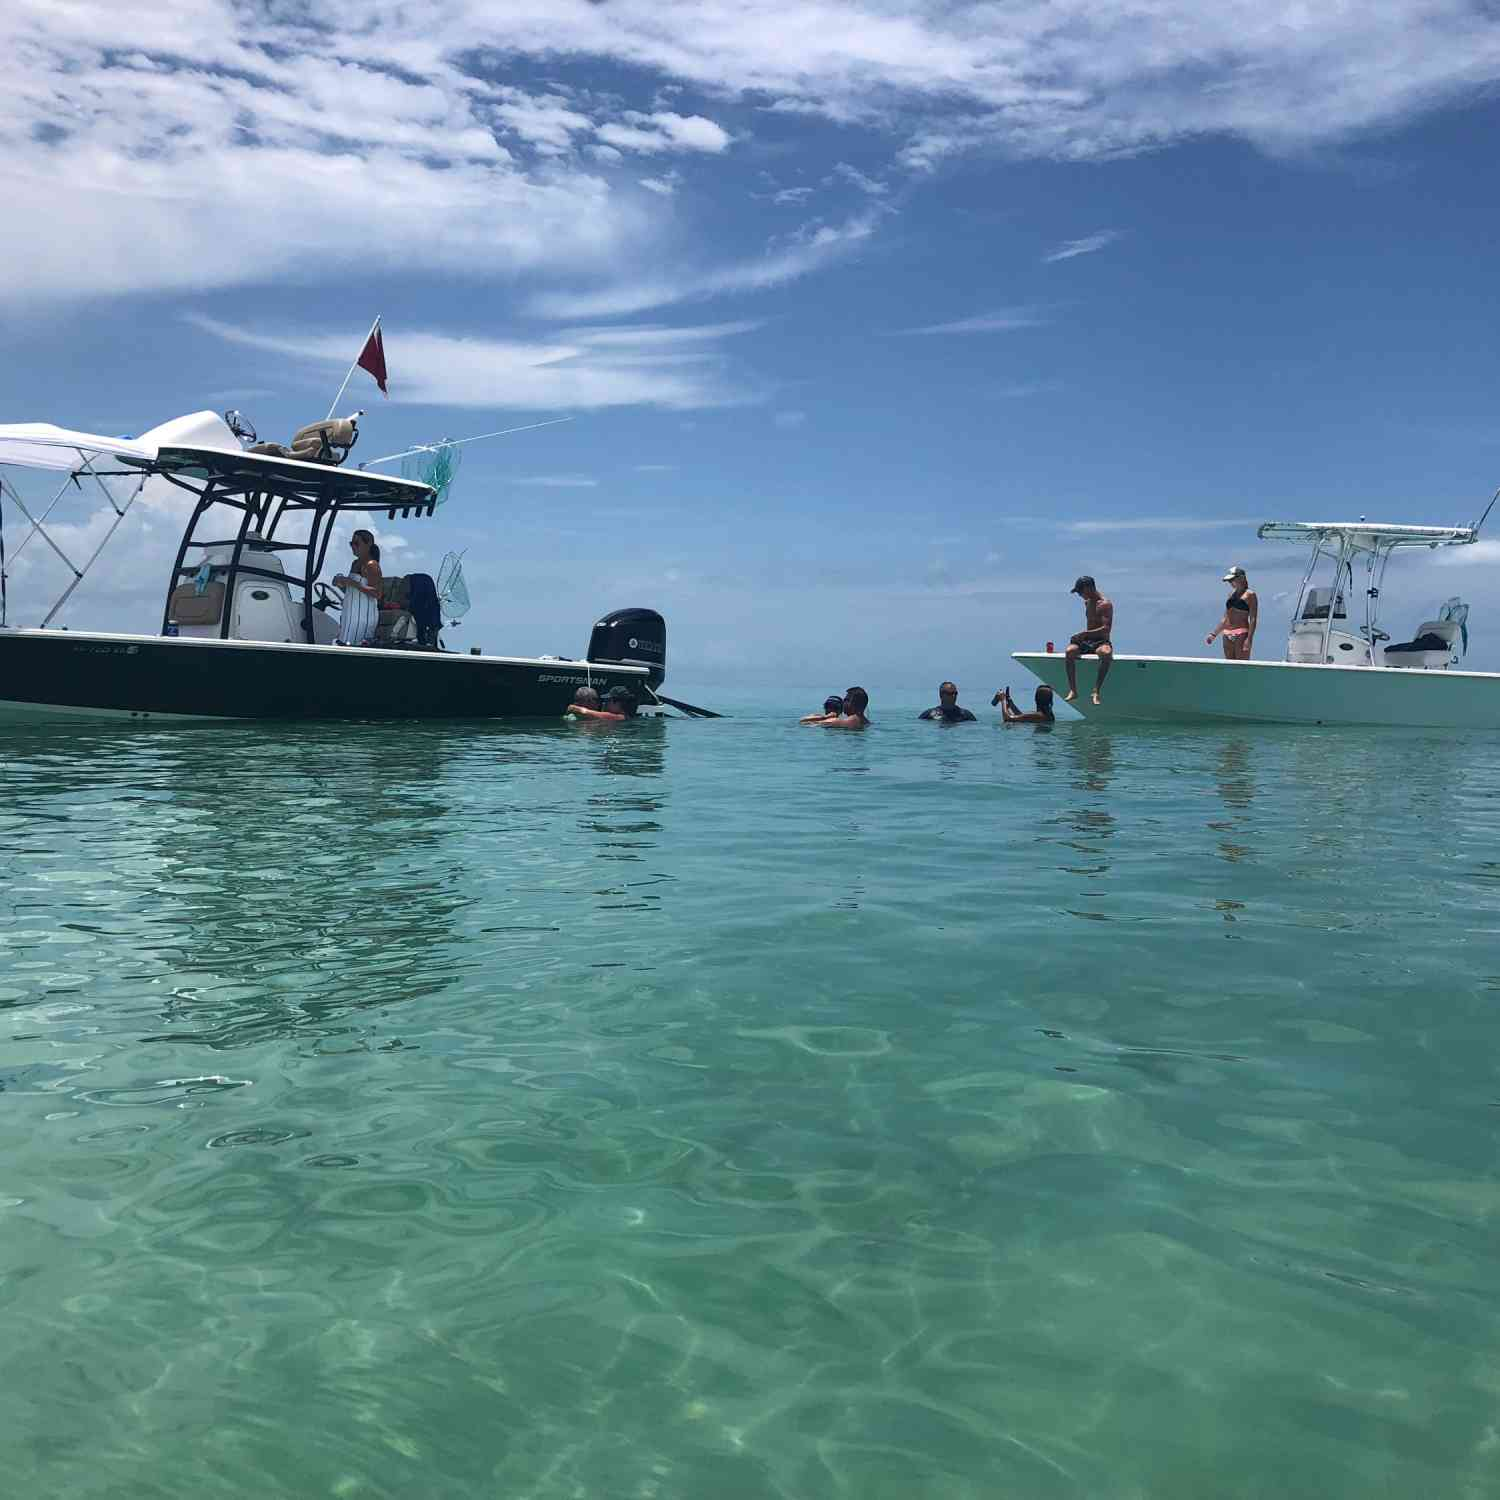 Title: Lazy day in the keys - On board their Sportsman Masters 267 Bay Boat - Location: Marathon fl. Participating in the Photo Contest #SportsmanFebruary2019